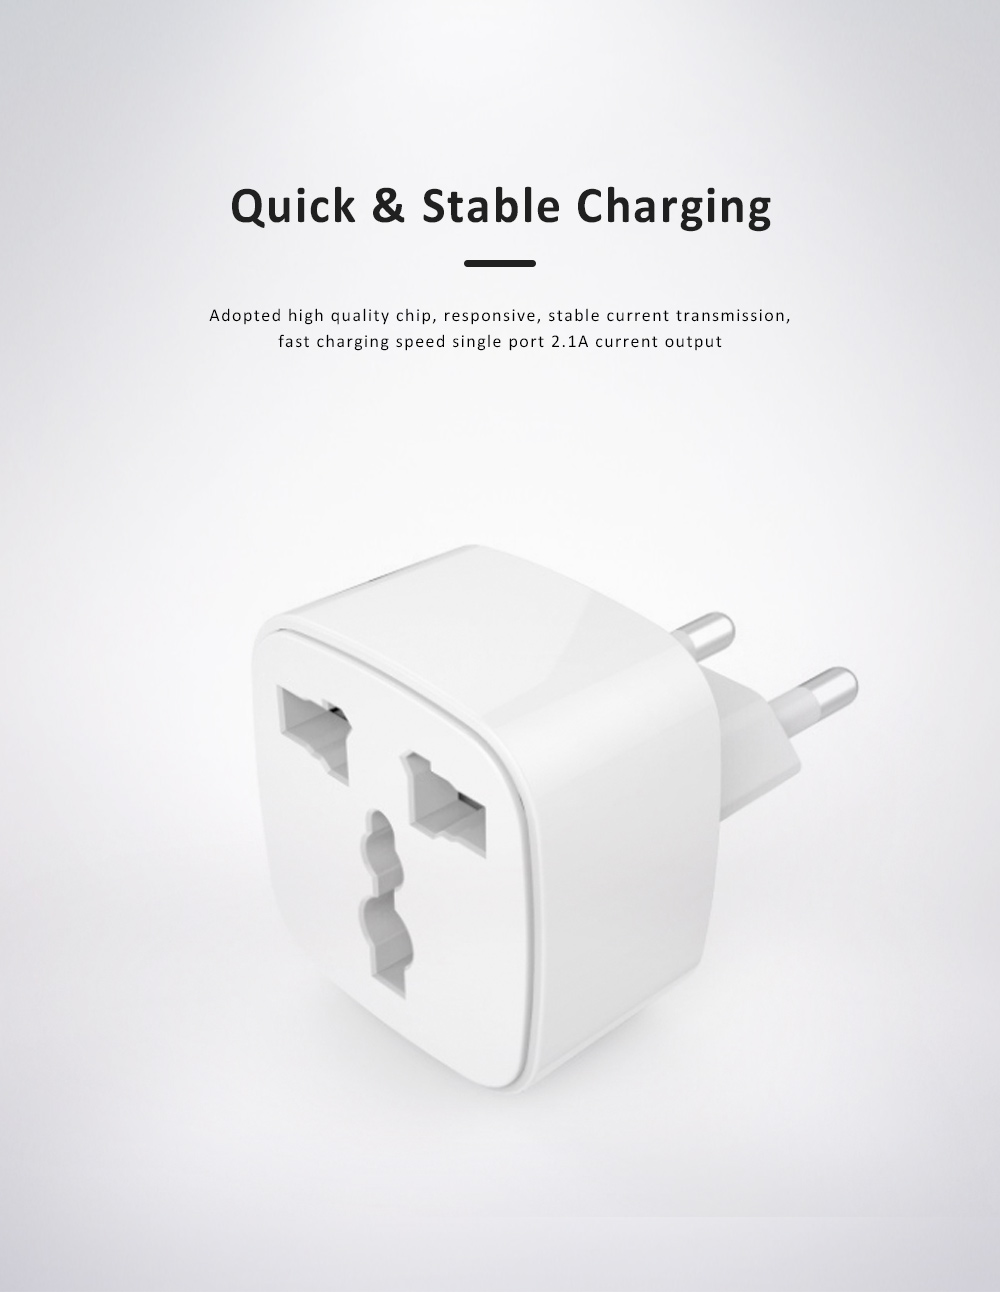 General Change-over Plug with Different Change-over Jacks, Small Portable Universal Travel Charging Plug 5